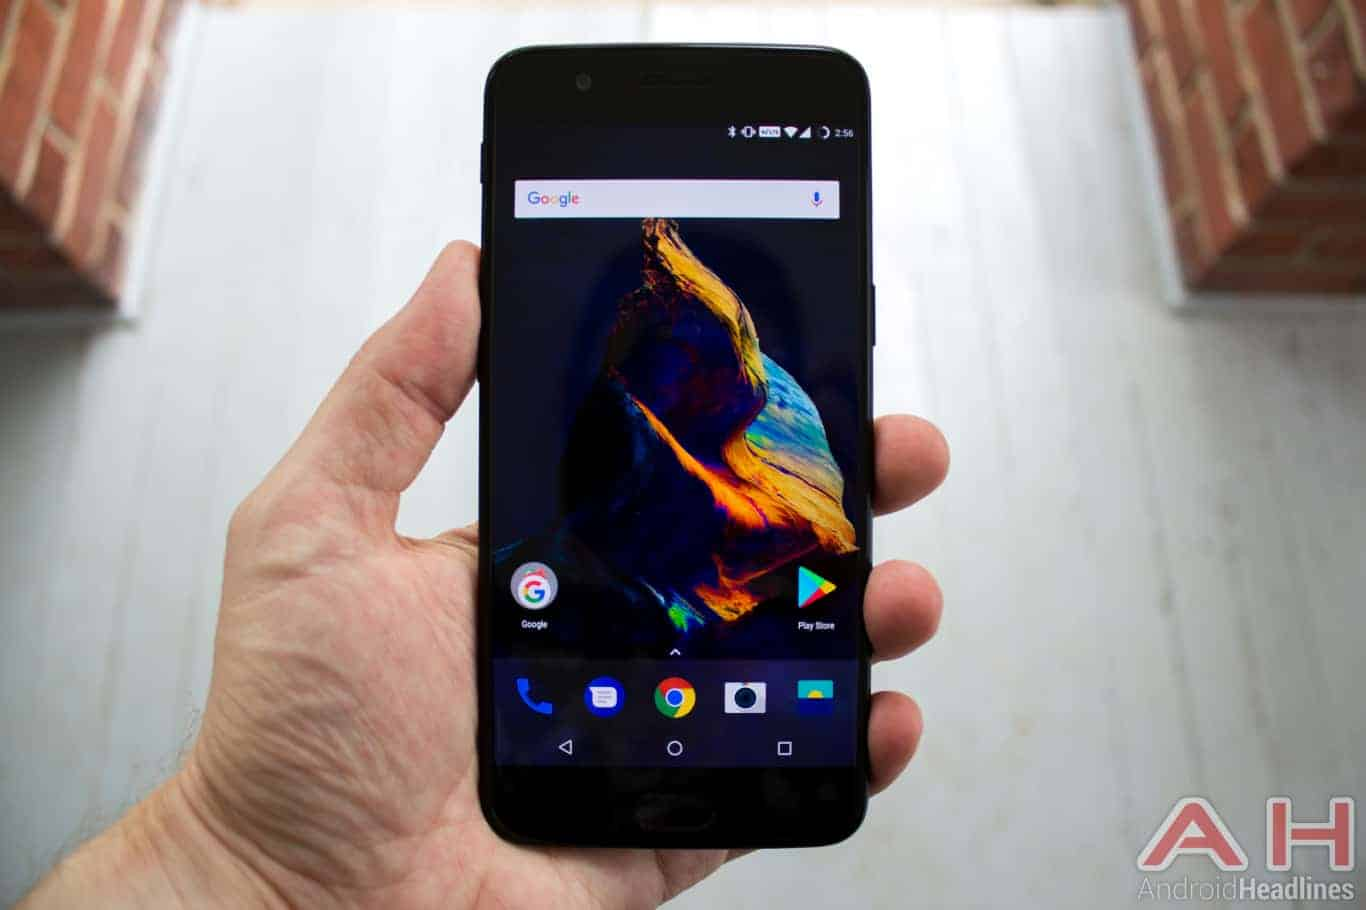 OnePlus 5 With 8GB RAM In Midnight Black Now Available Immediately